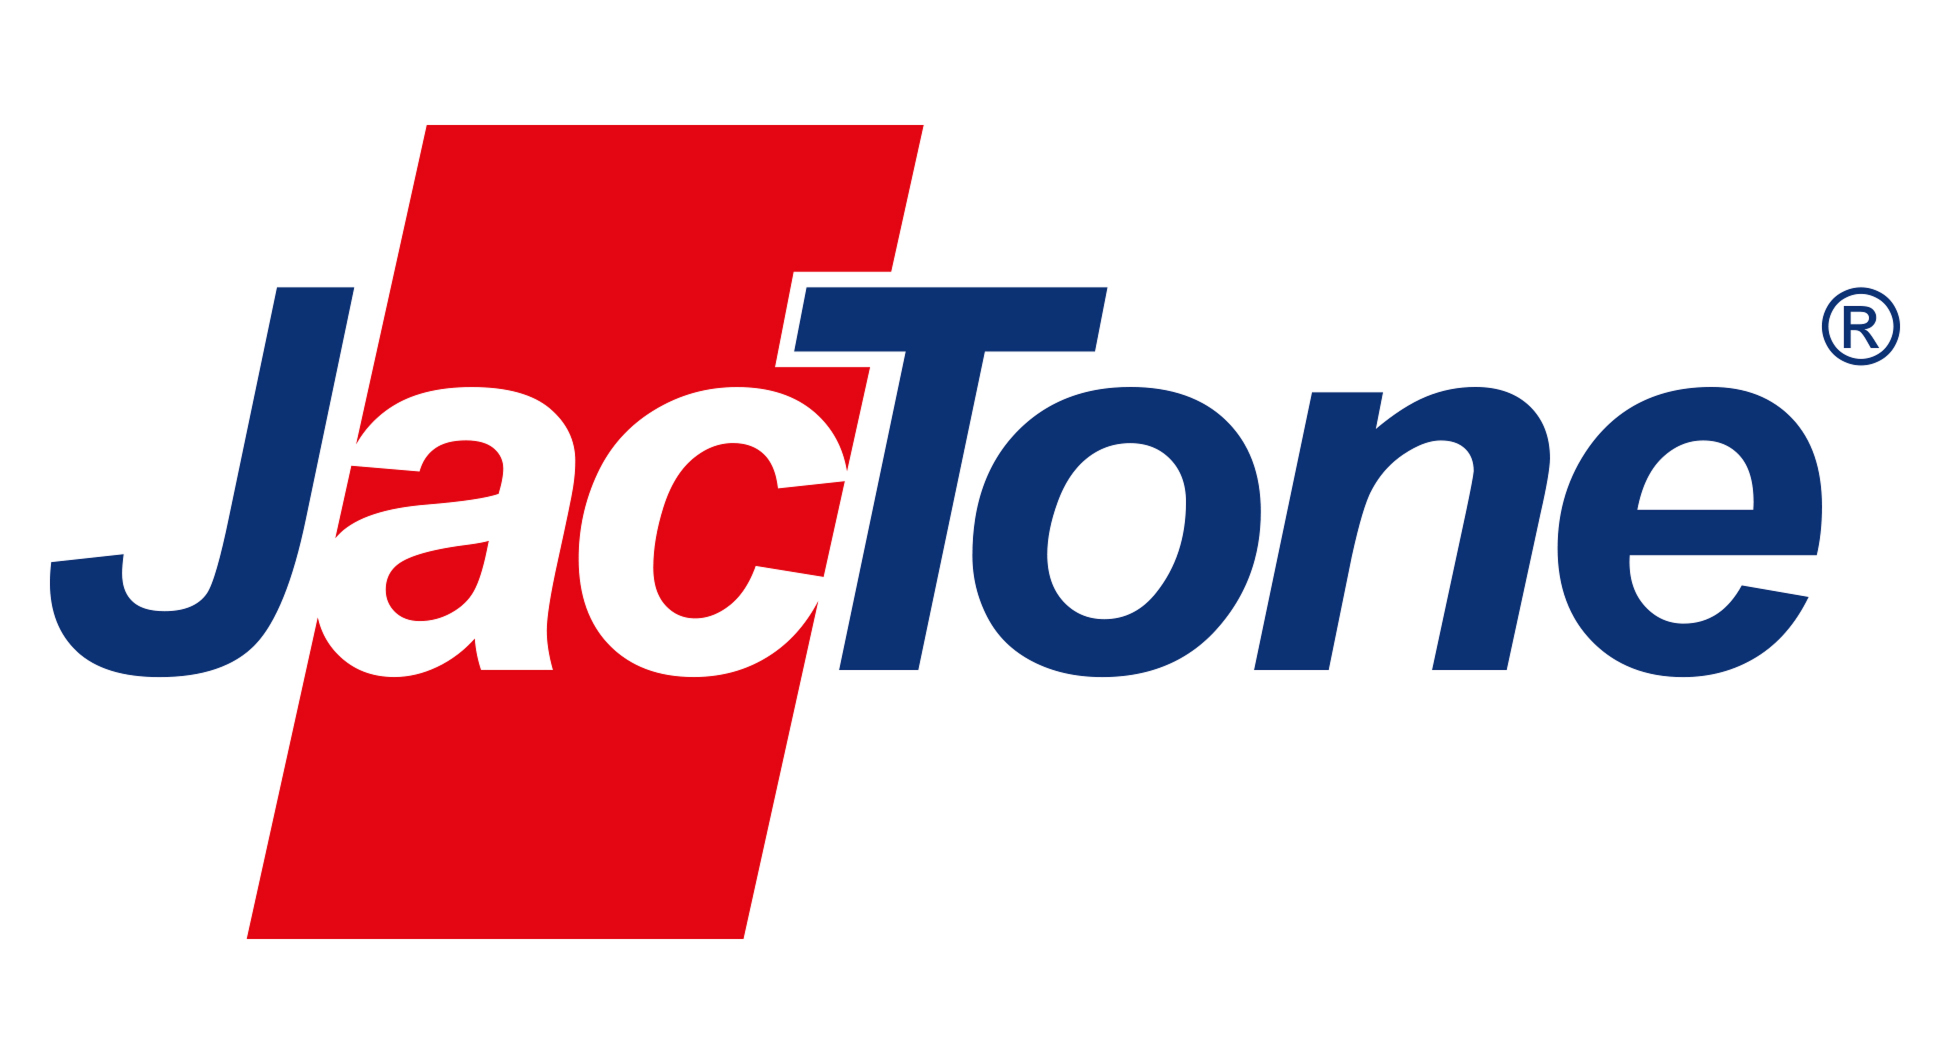 Jactone Products Ltd